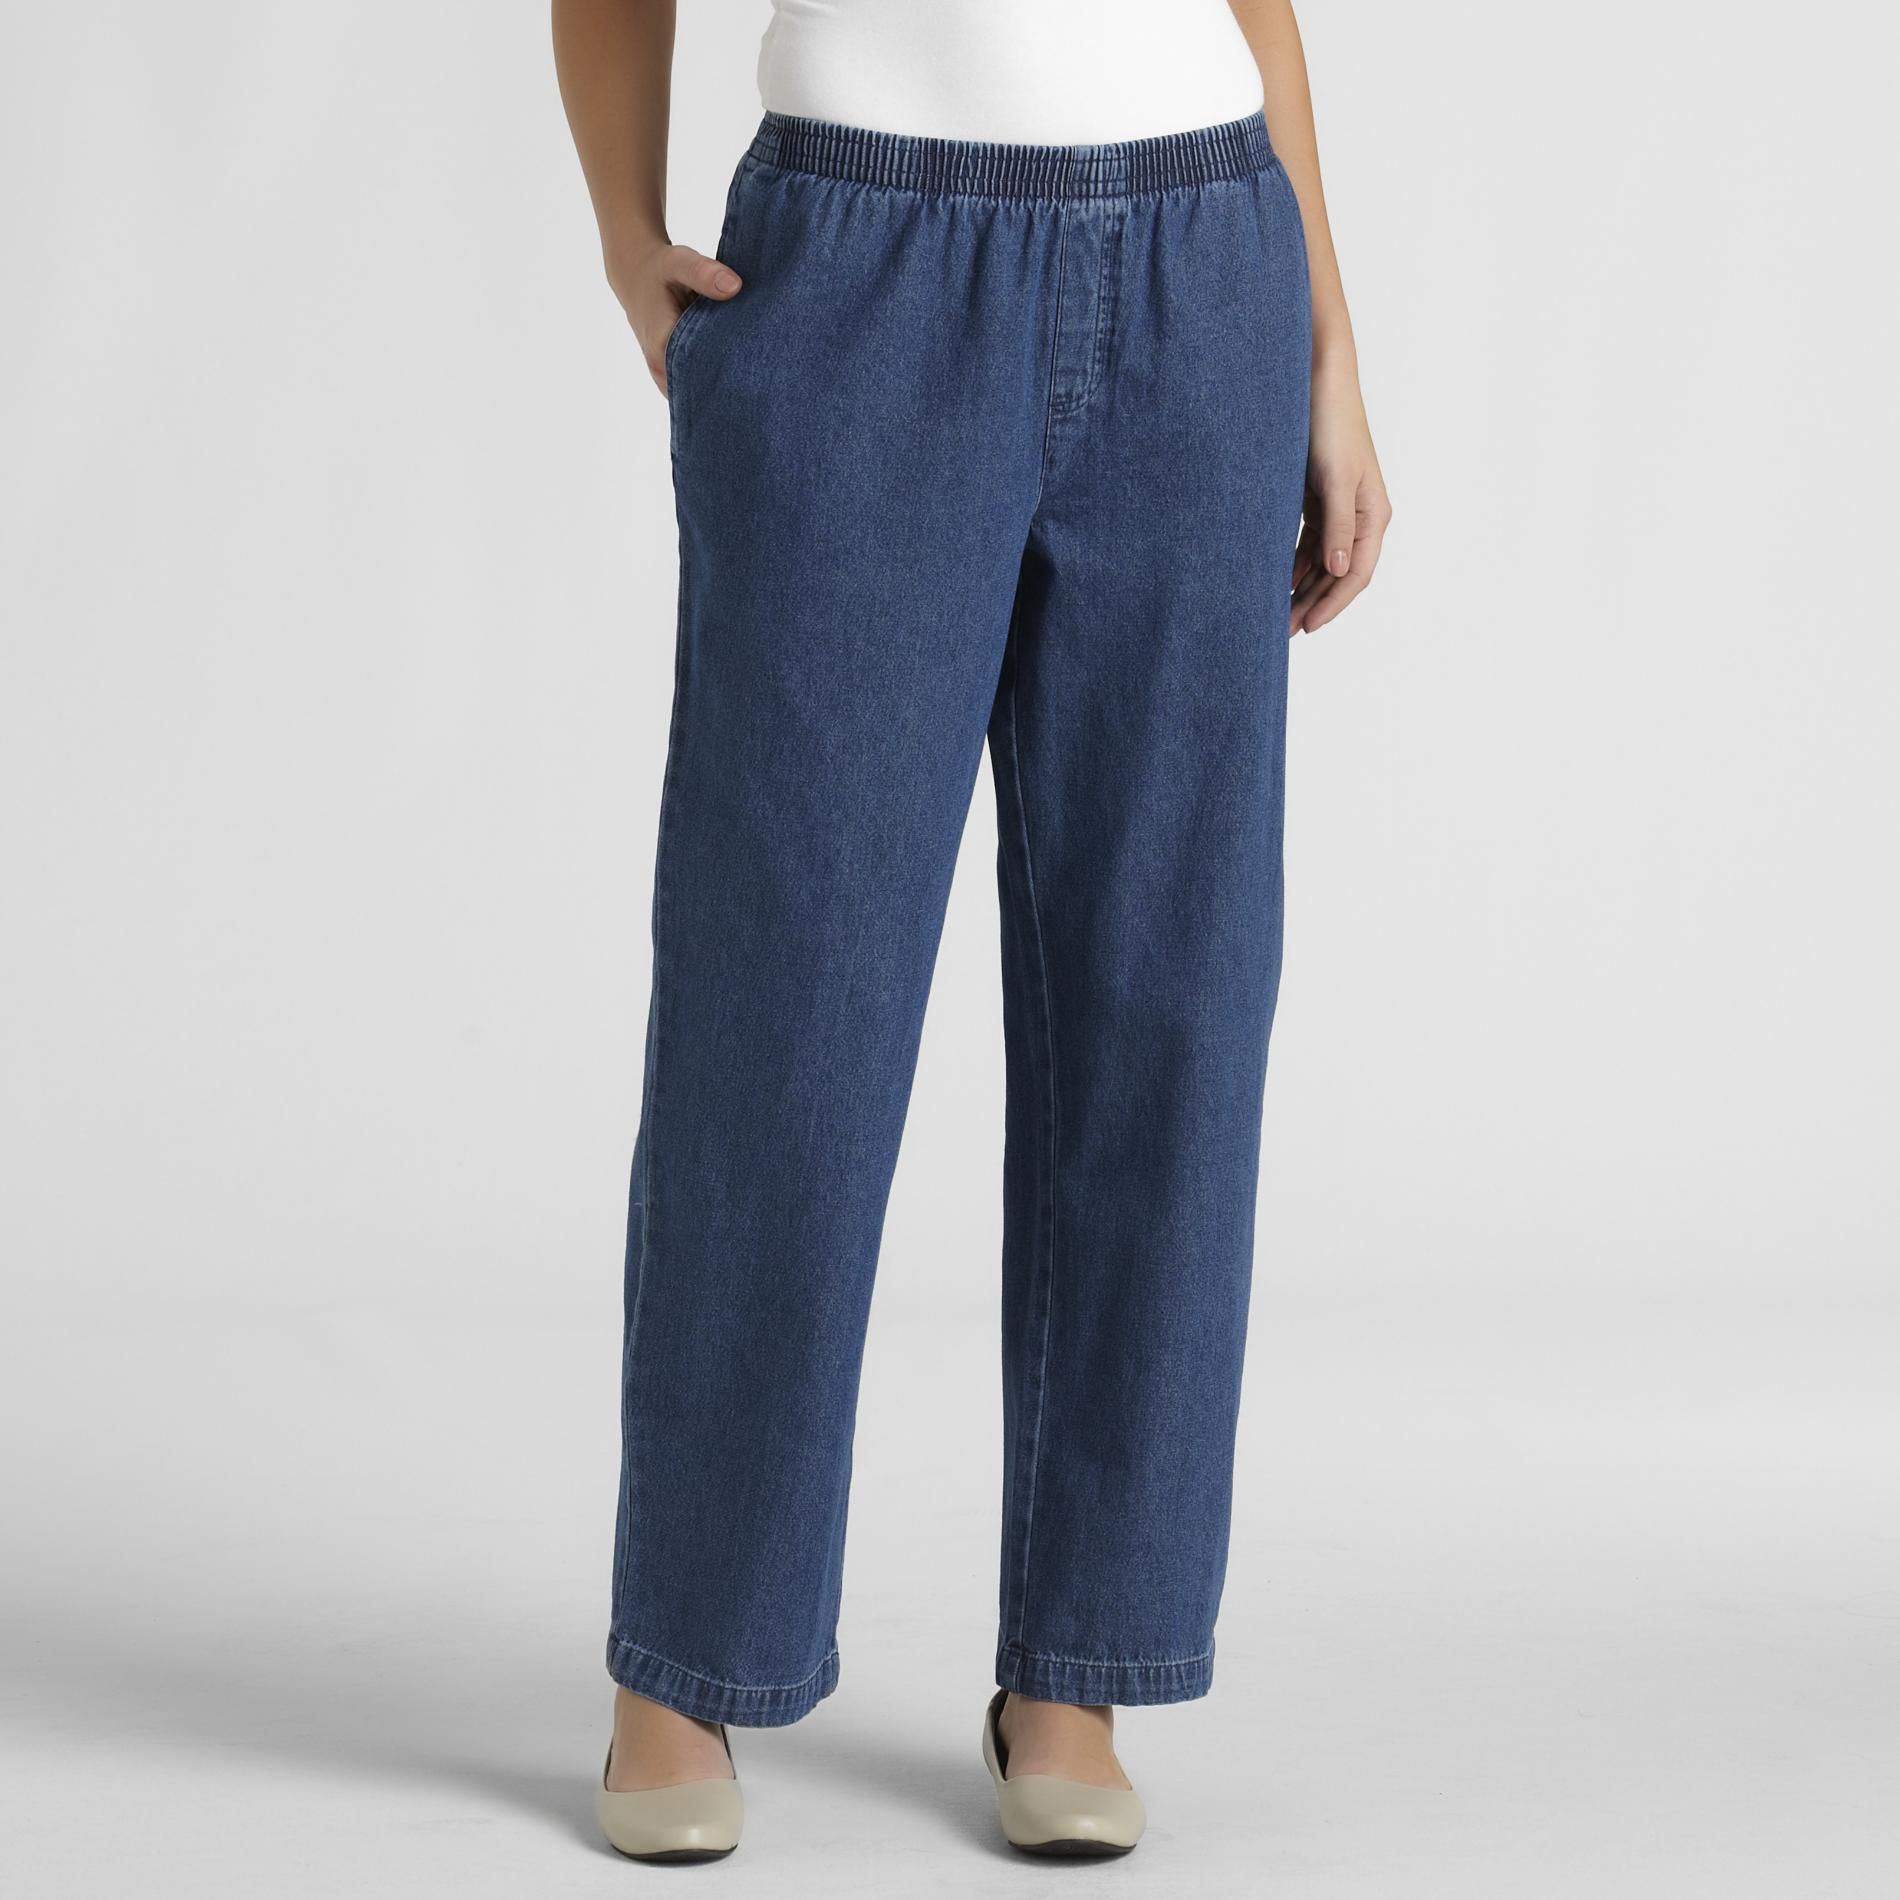 Basic Editions Women's Relaxed-Fit Jeans